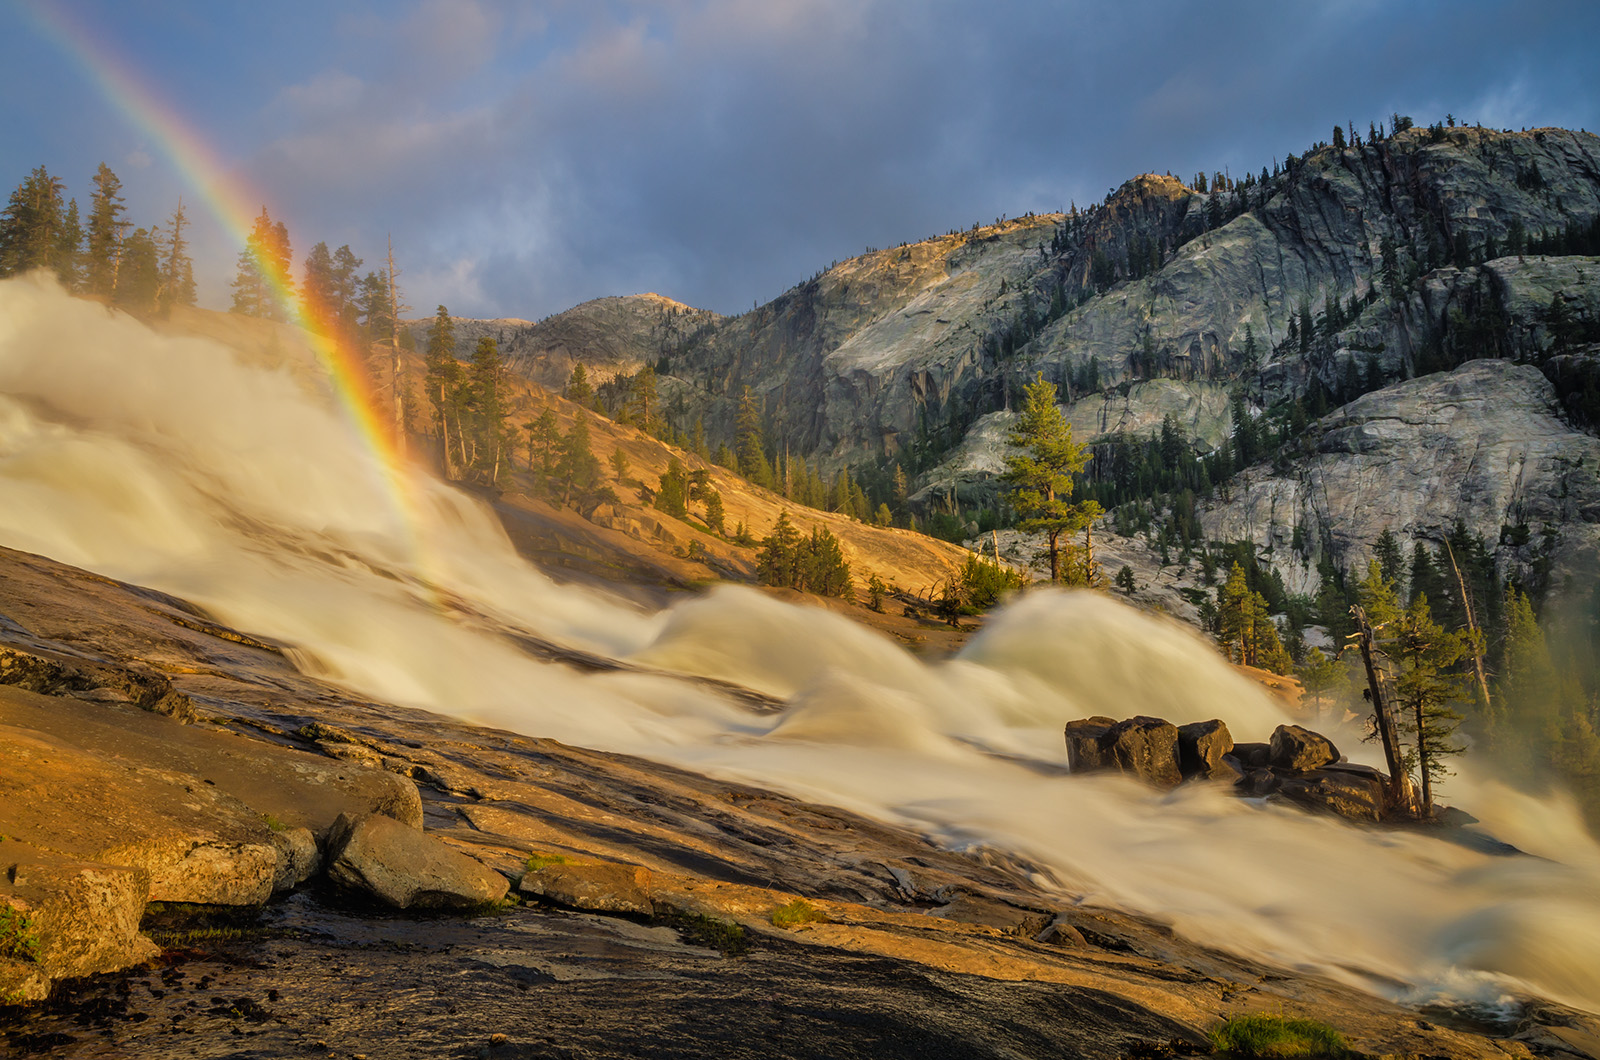 A1302, Arc, Atmosphere, Atmospheric, Backcountry, Beautiful, Beauty, Beauty In Nature, Blurred, Blurred Motion, Blurry, CA, California, Cascade, Cascading, Color, Colorful, Colour, Colourful, Dramatic, photo